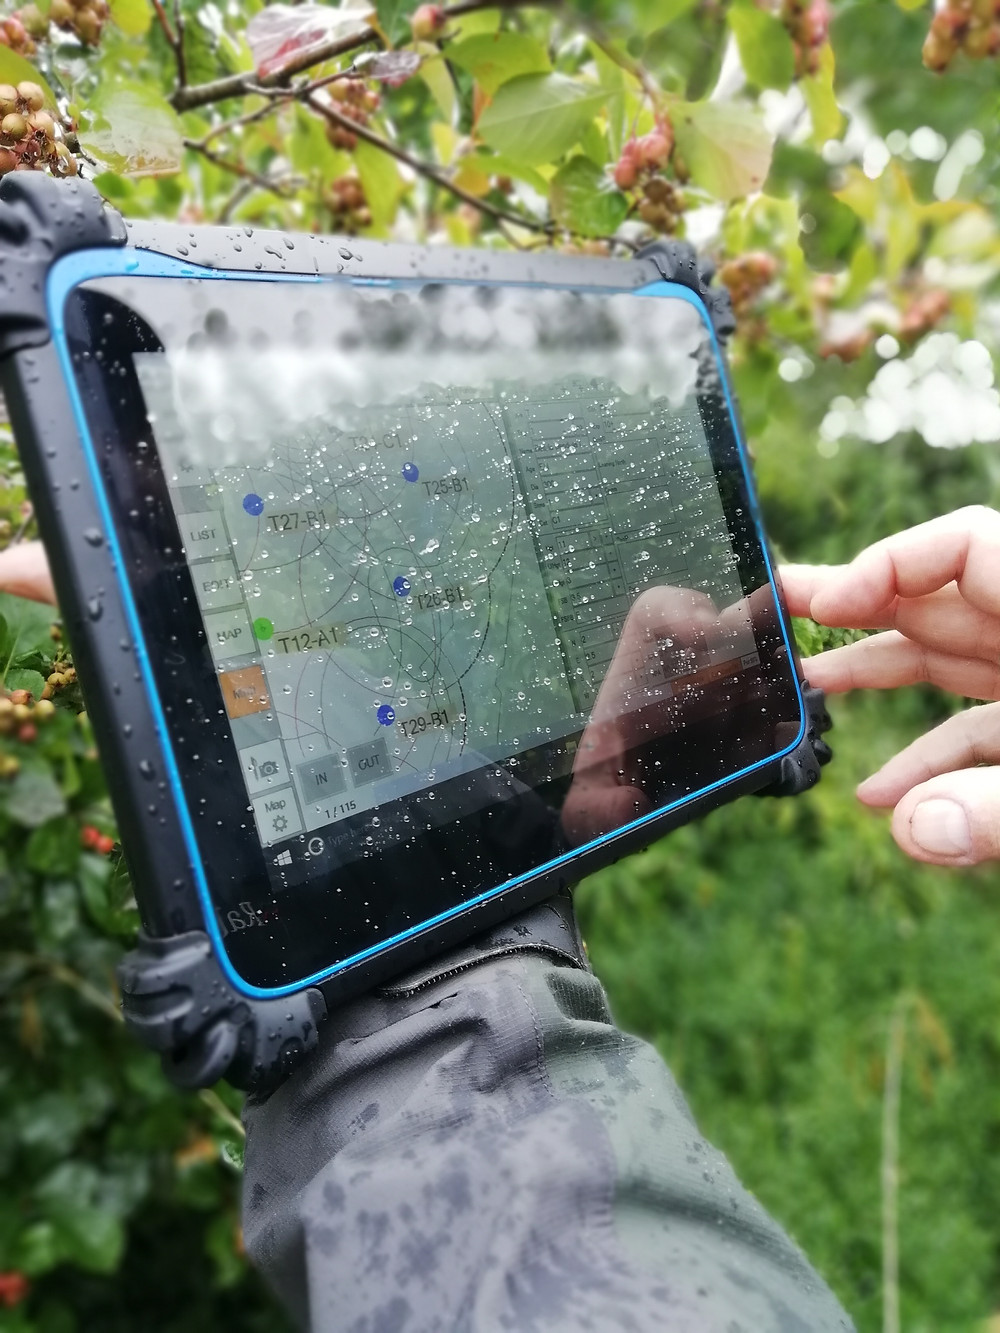 Rugged Tablets don't stop play!